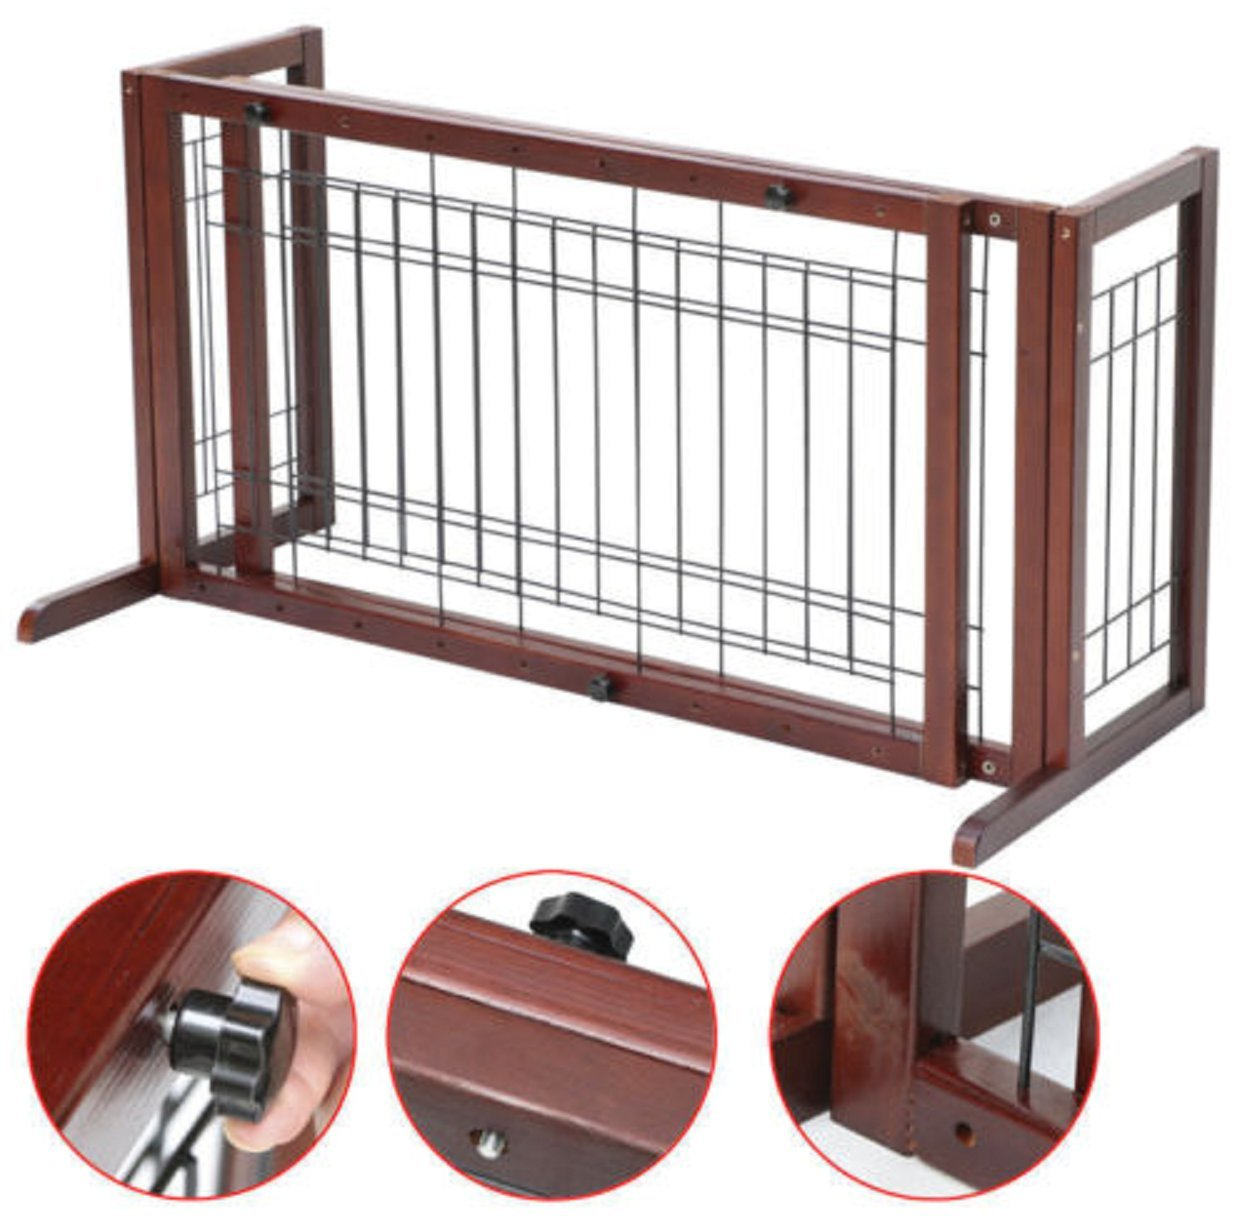 Gate Dog Wood Door Paw Wide Tall Adjustable Indoor Solid Construction Pet by SisterYou (Image #4)